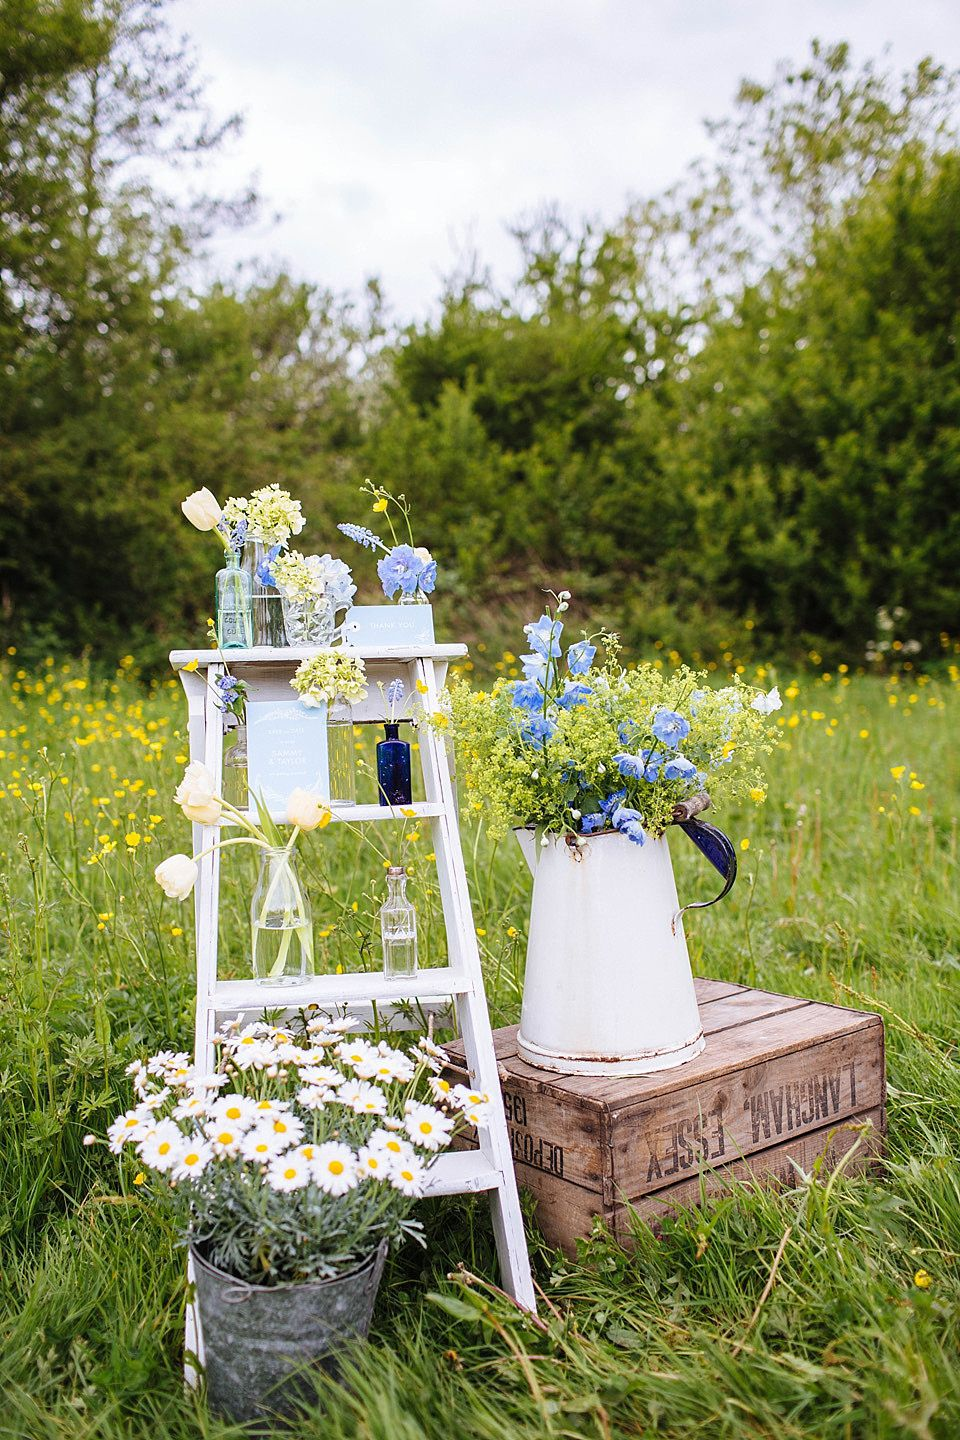 Late Spring/Early Summer Rustic Outdoor Wedding